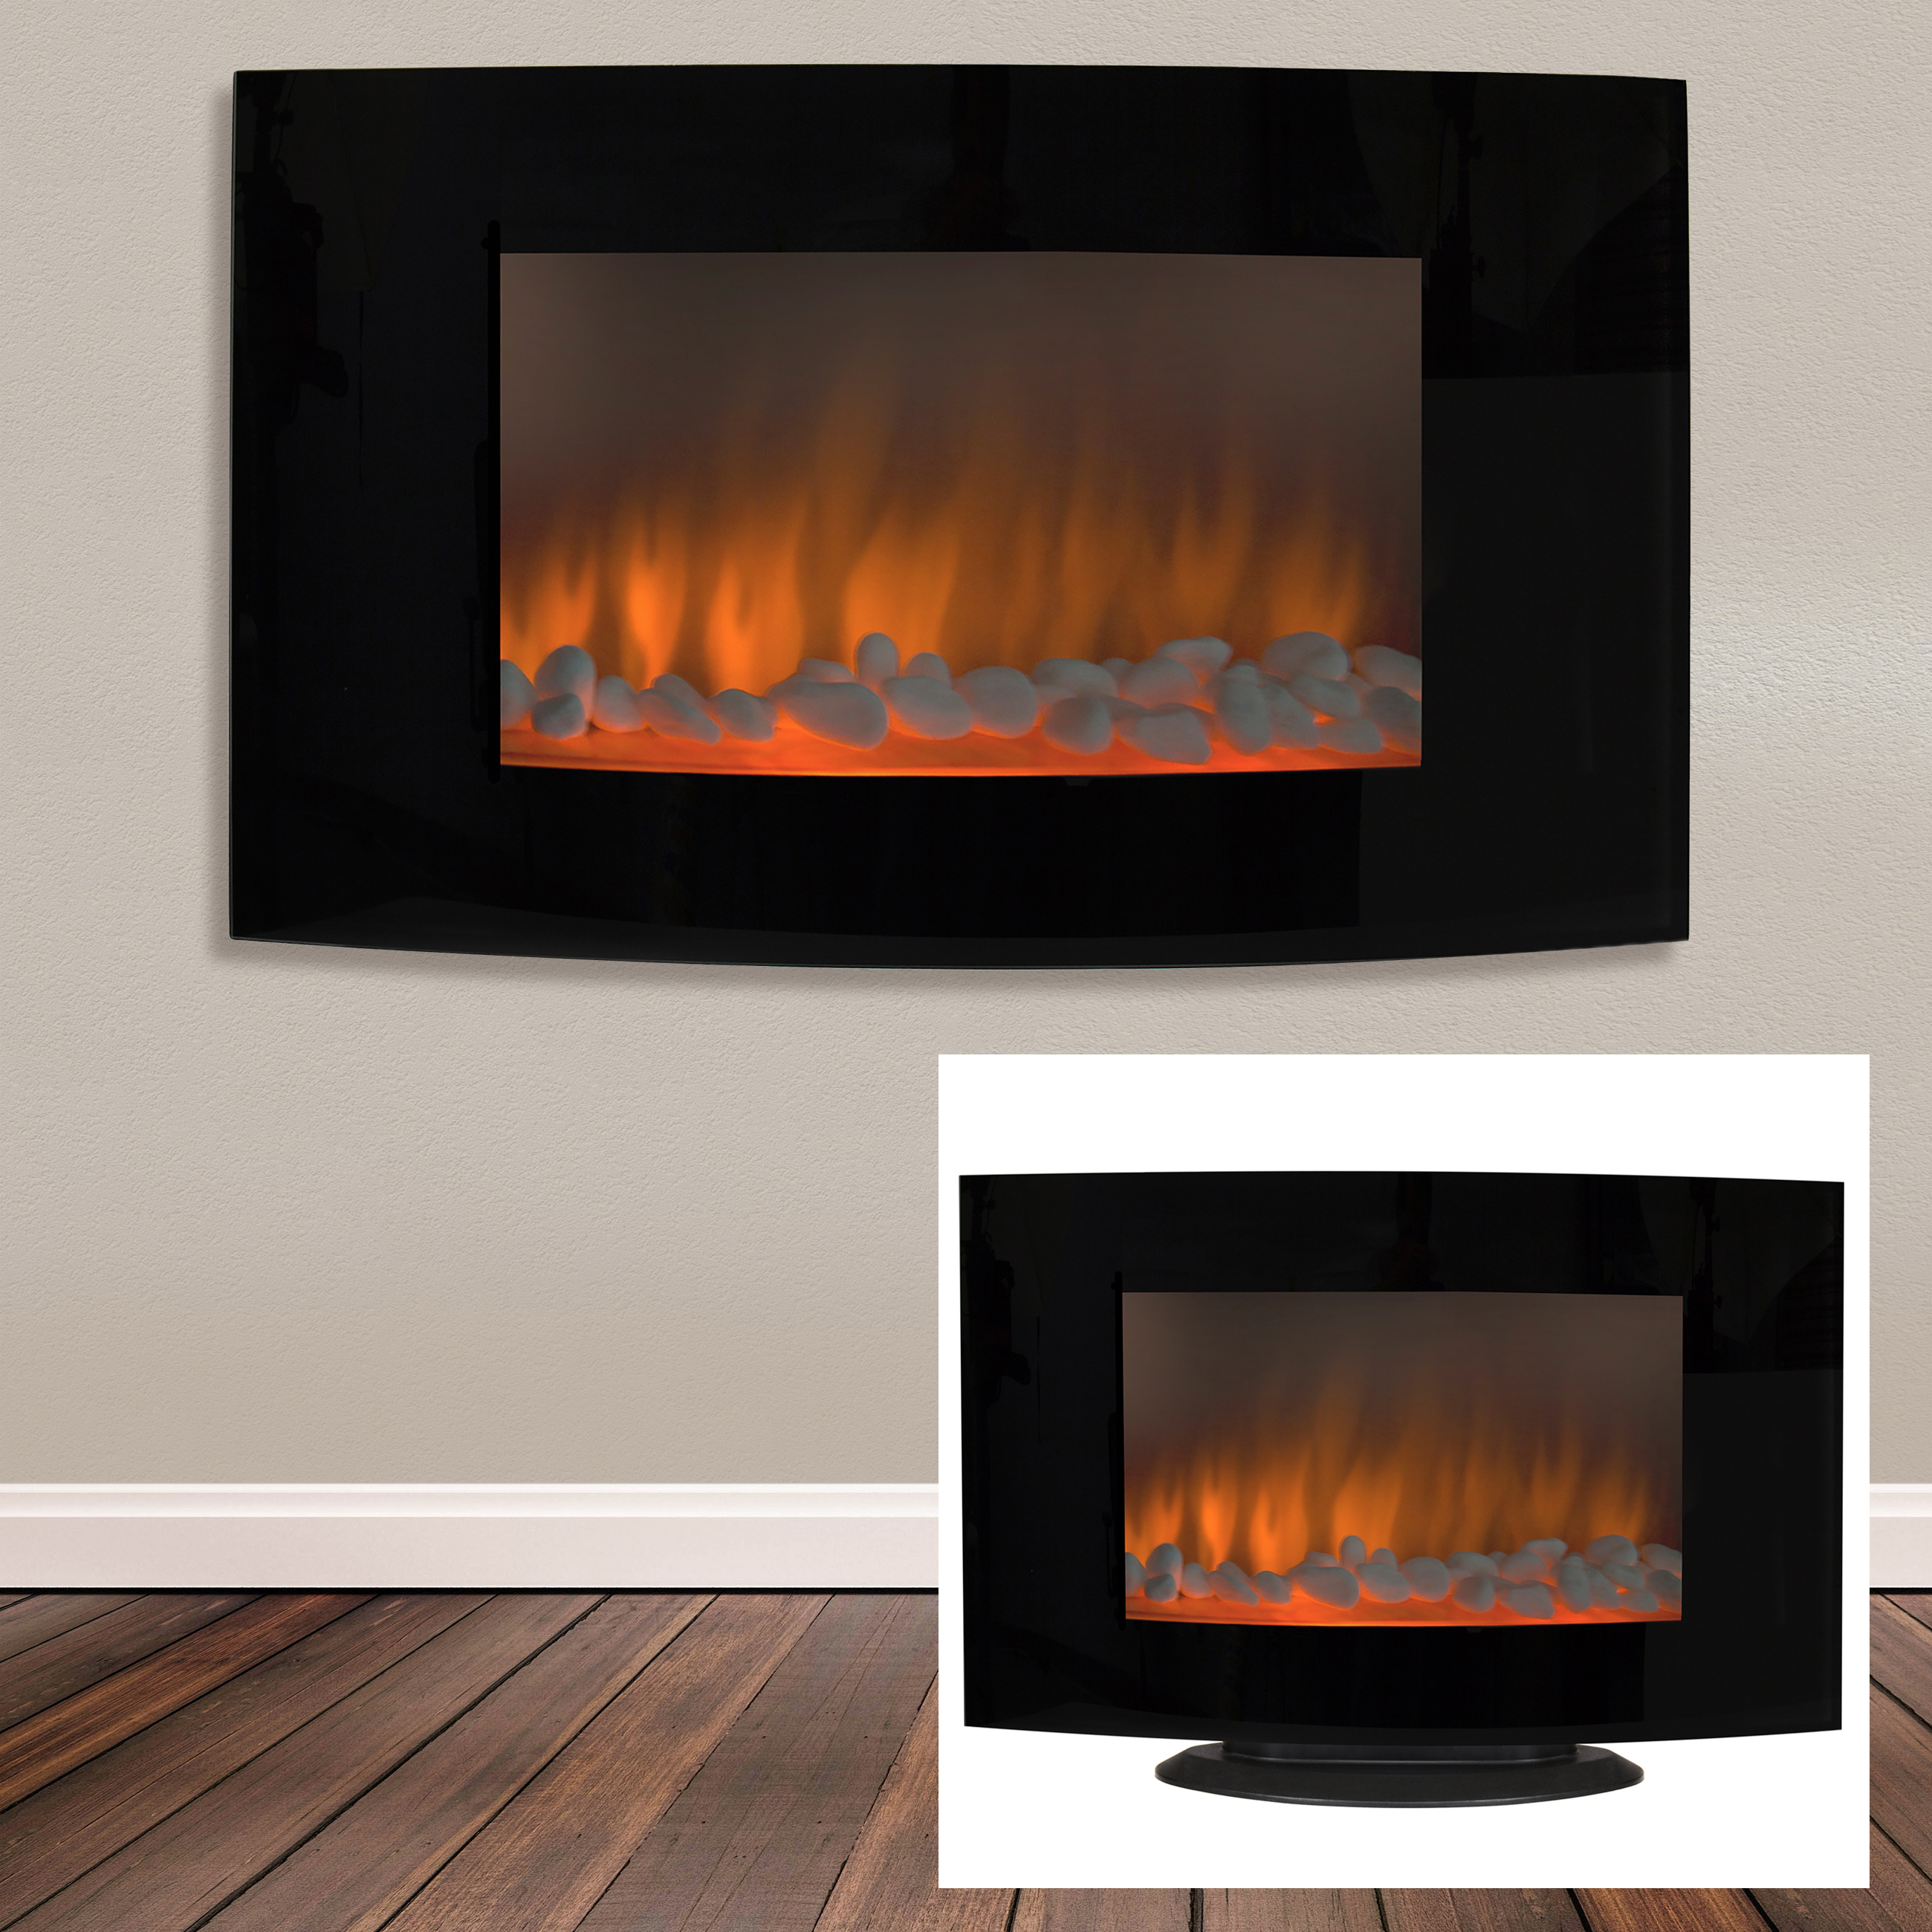 Amish Heaters Big Lots Smlf Space Heater That Looks Like A Fireplace Fireplace Ideas Heater